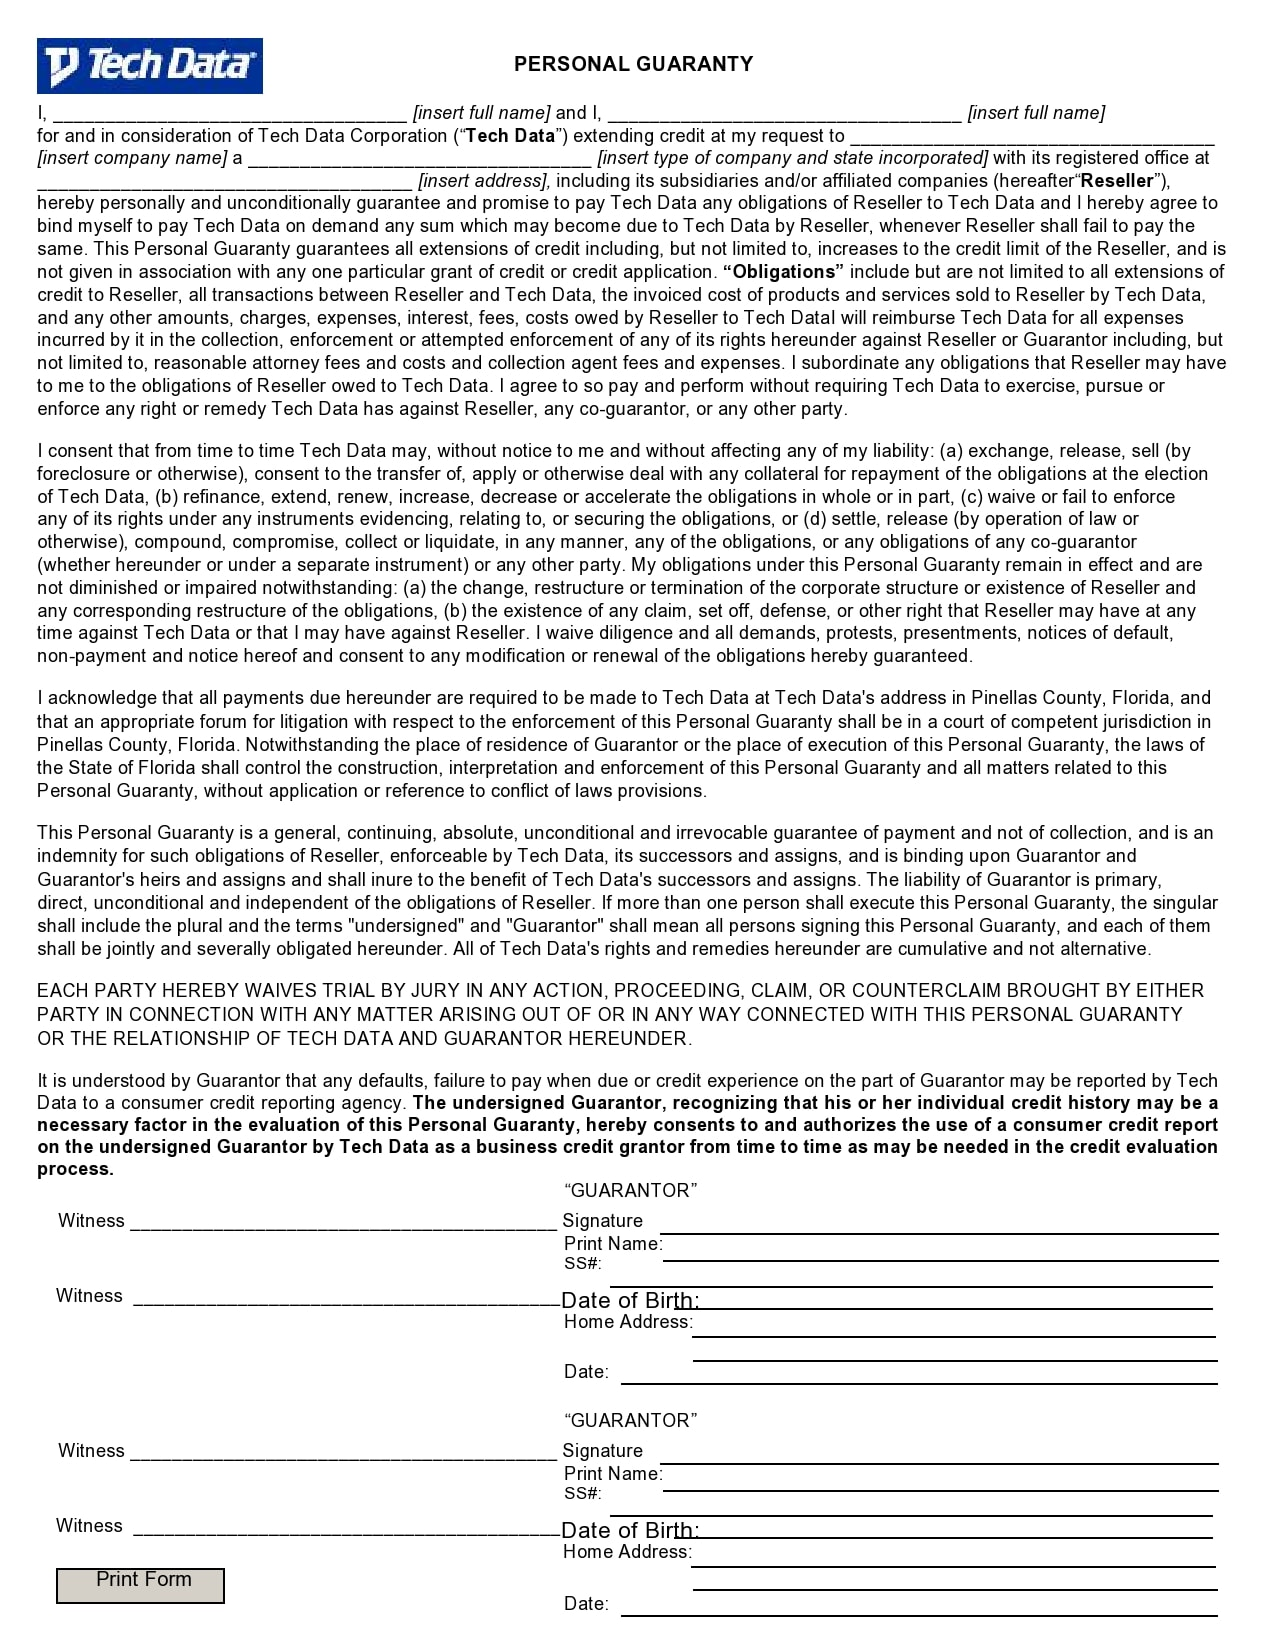 personal guarantee form 05